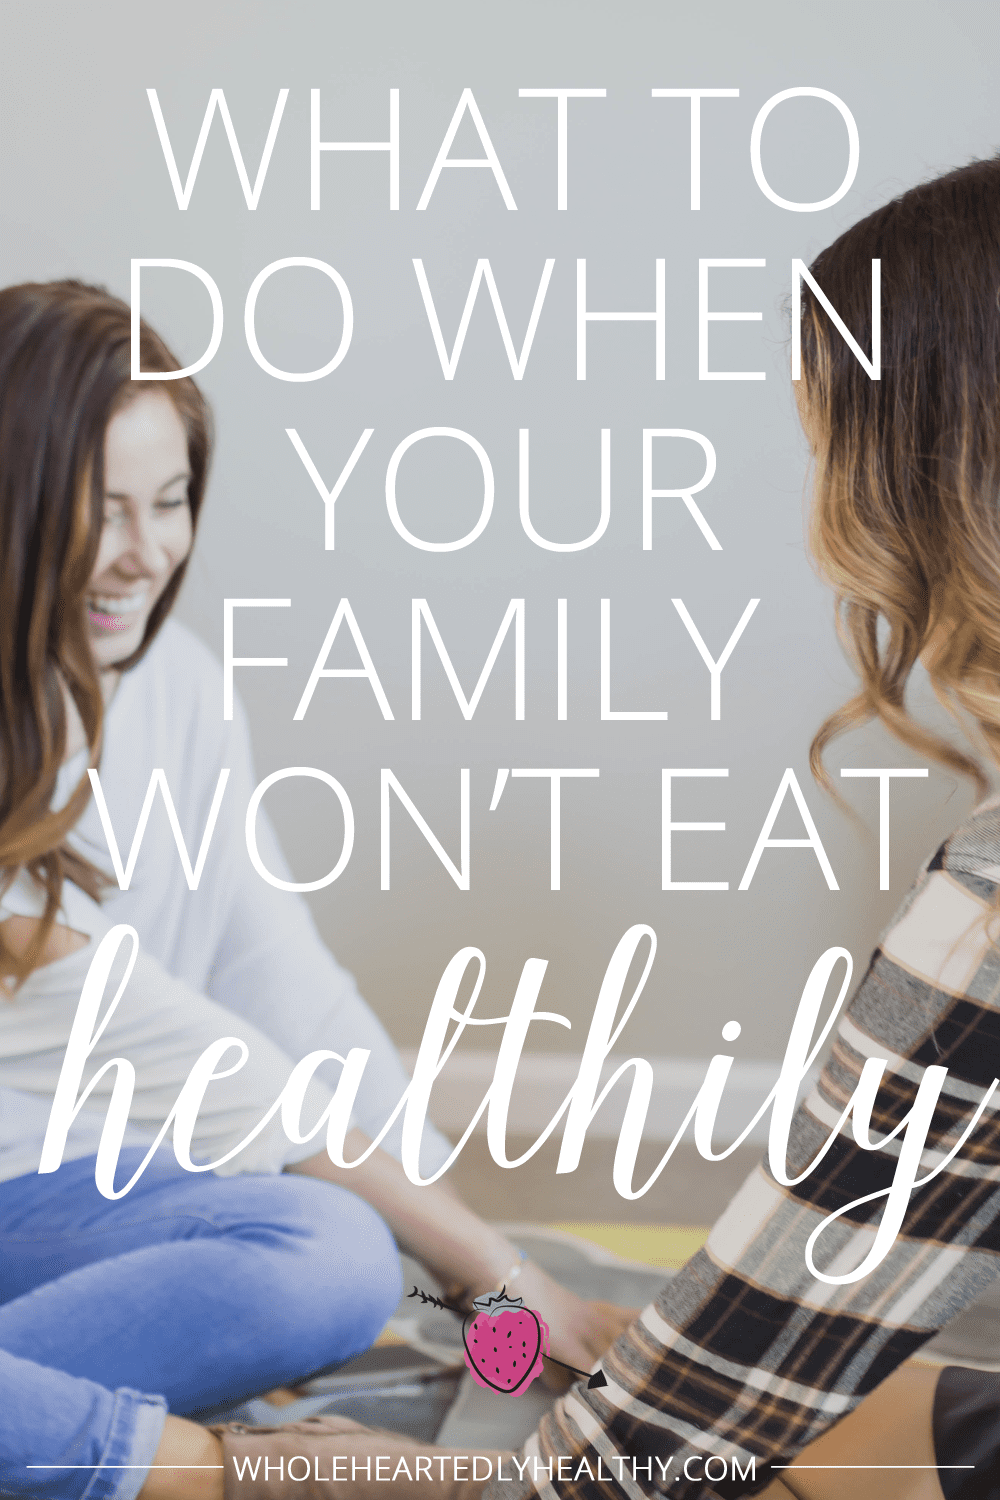 What to do when your family won t eat healthily